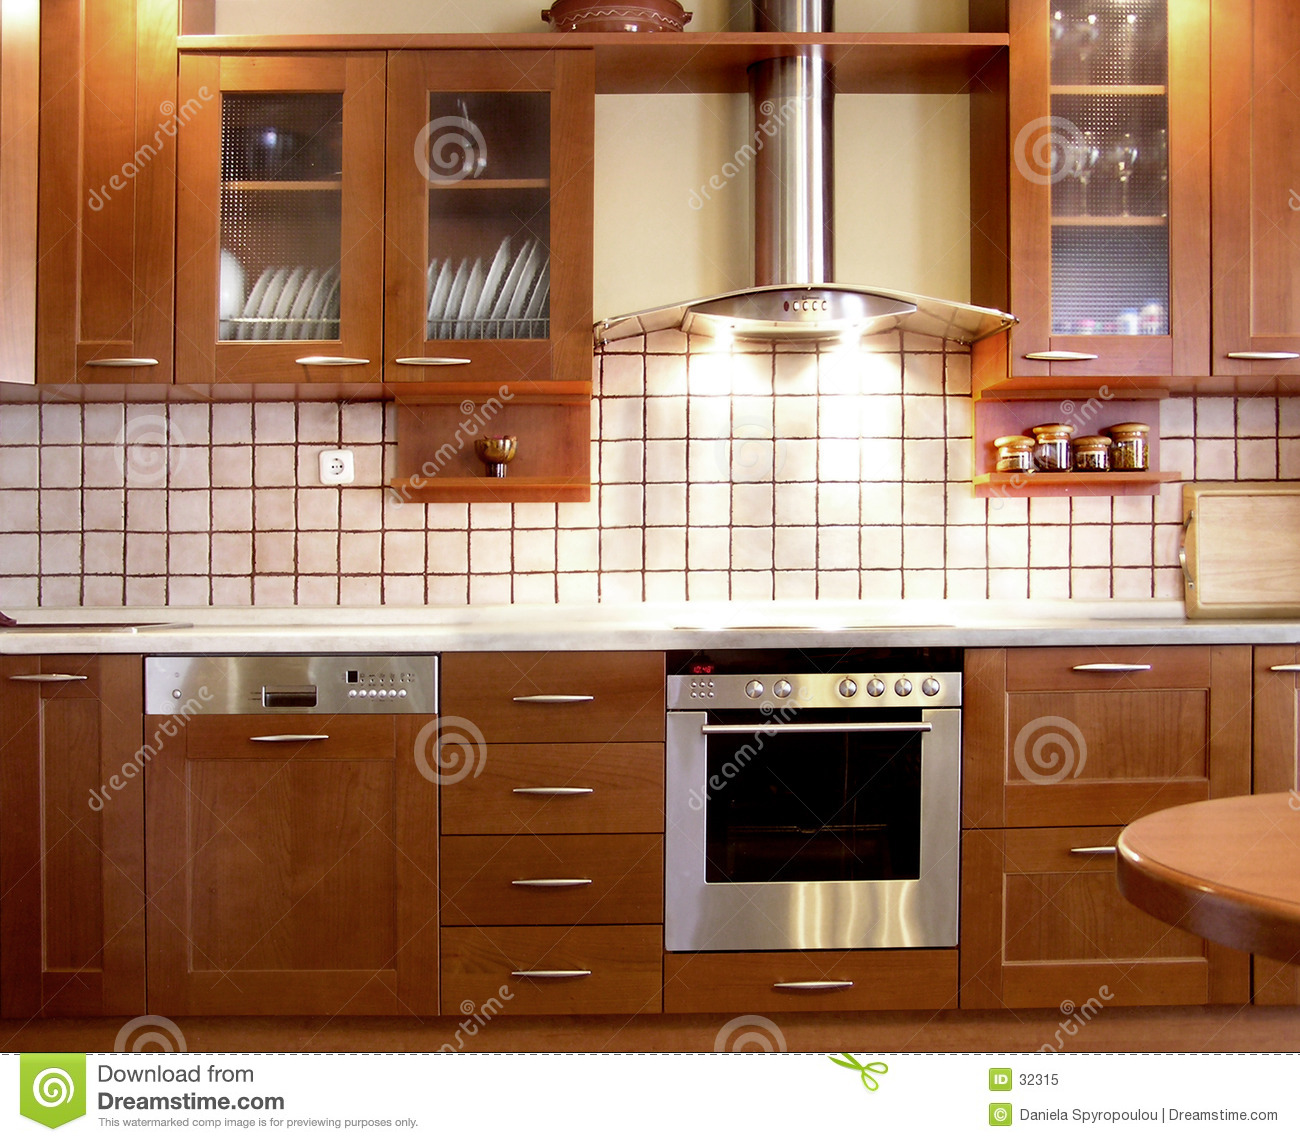 Cherry Kitchen Design Stock Image Image Of Kitchens Decoration 32315